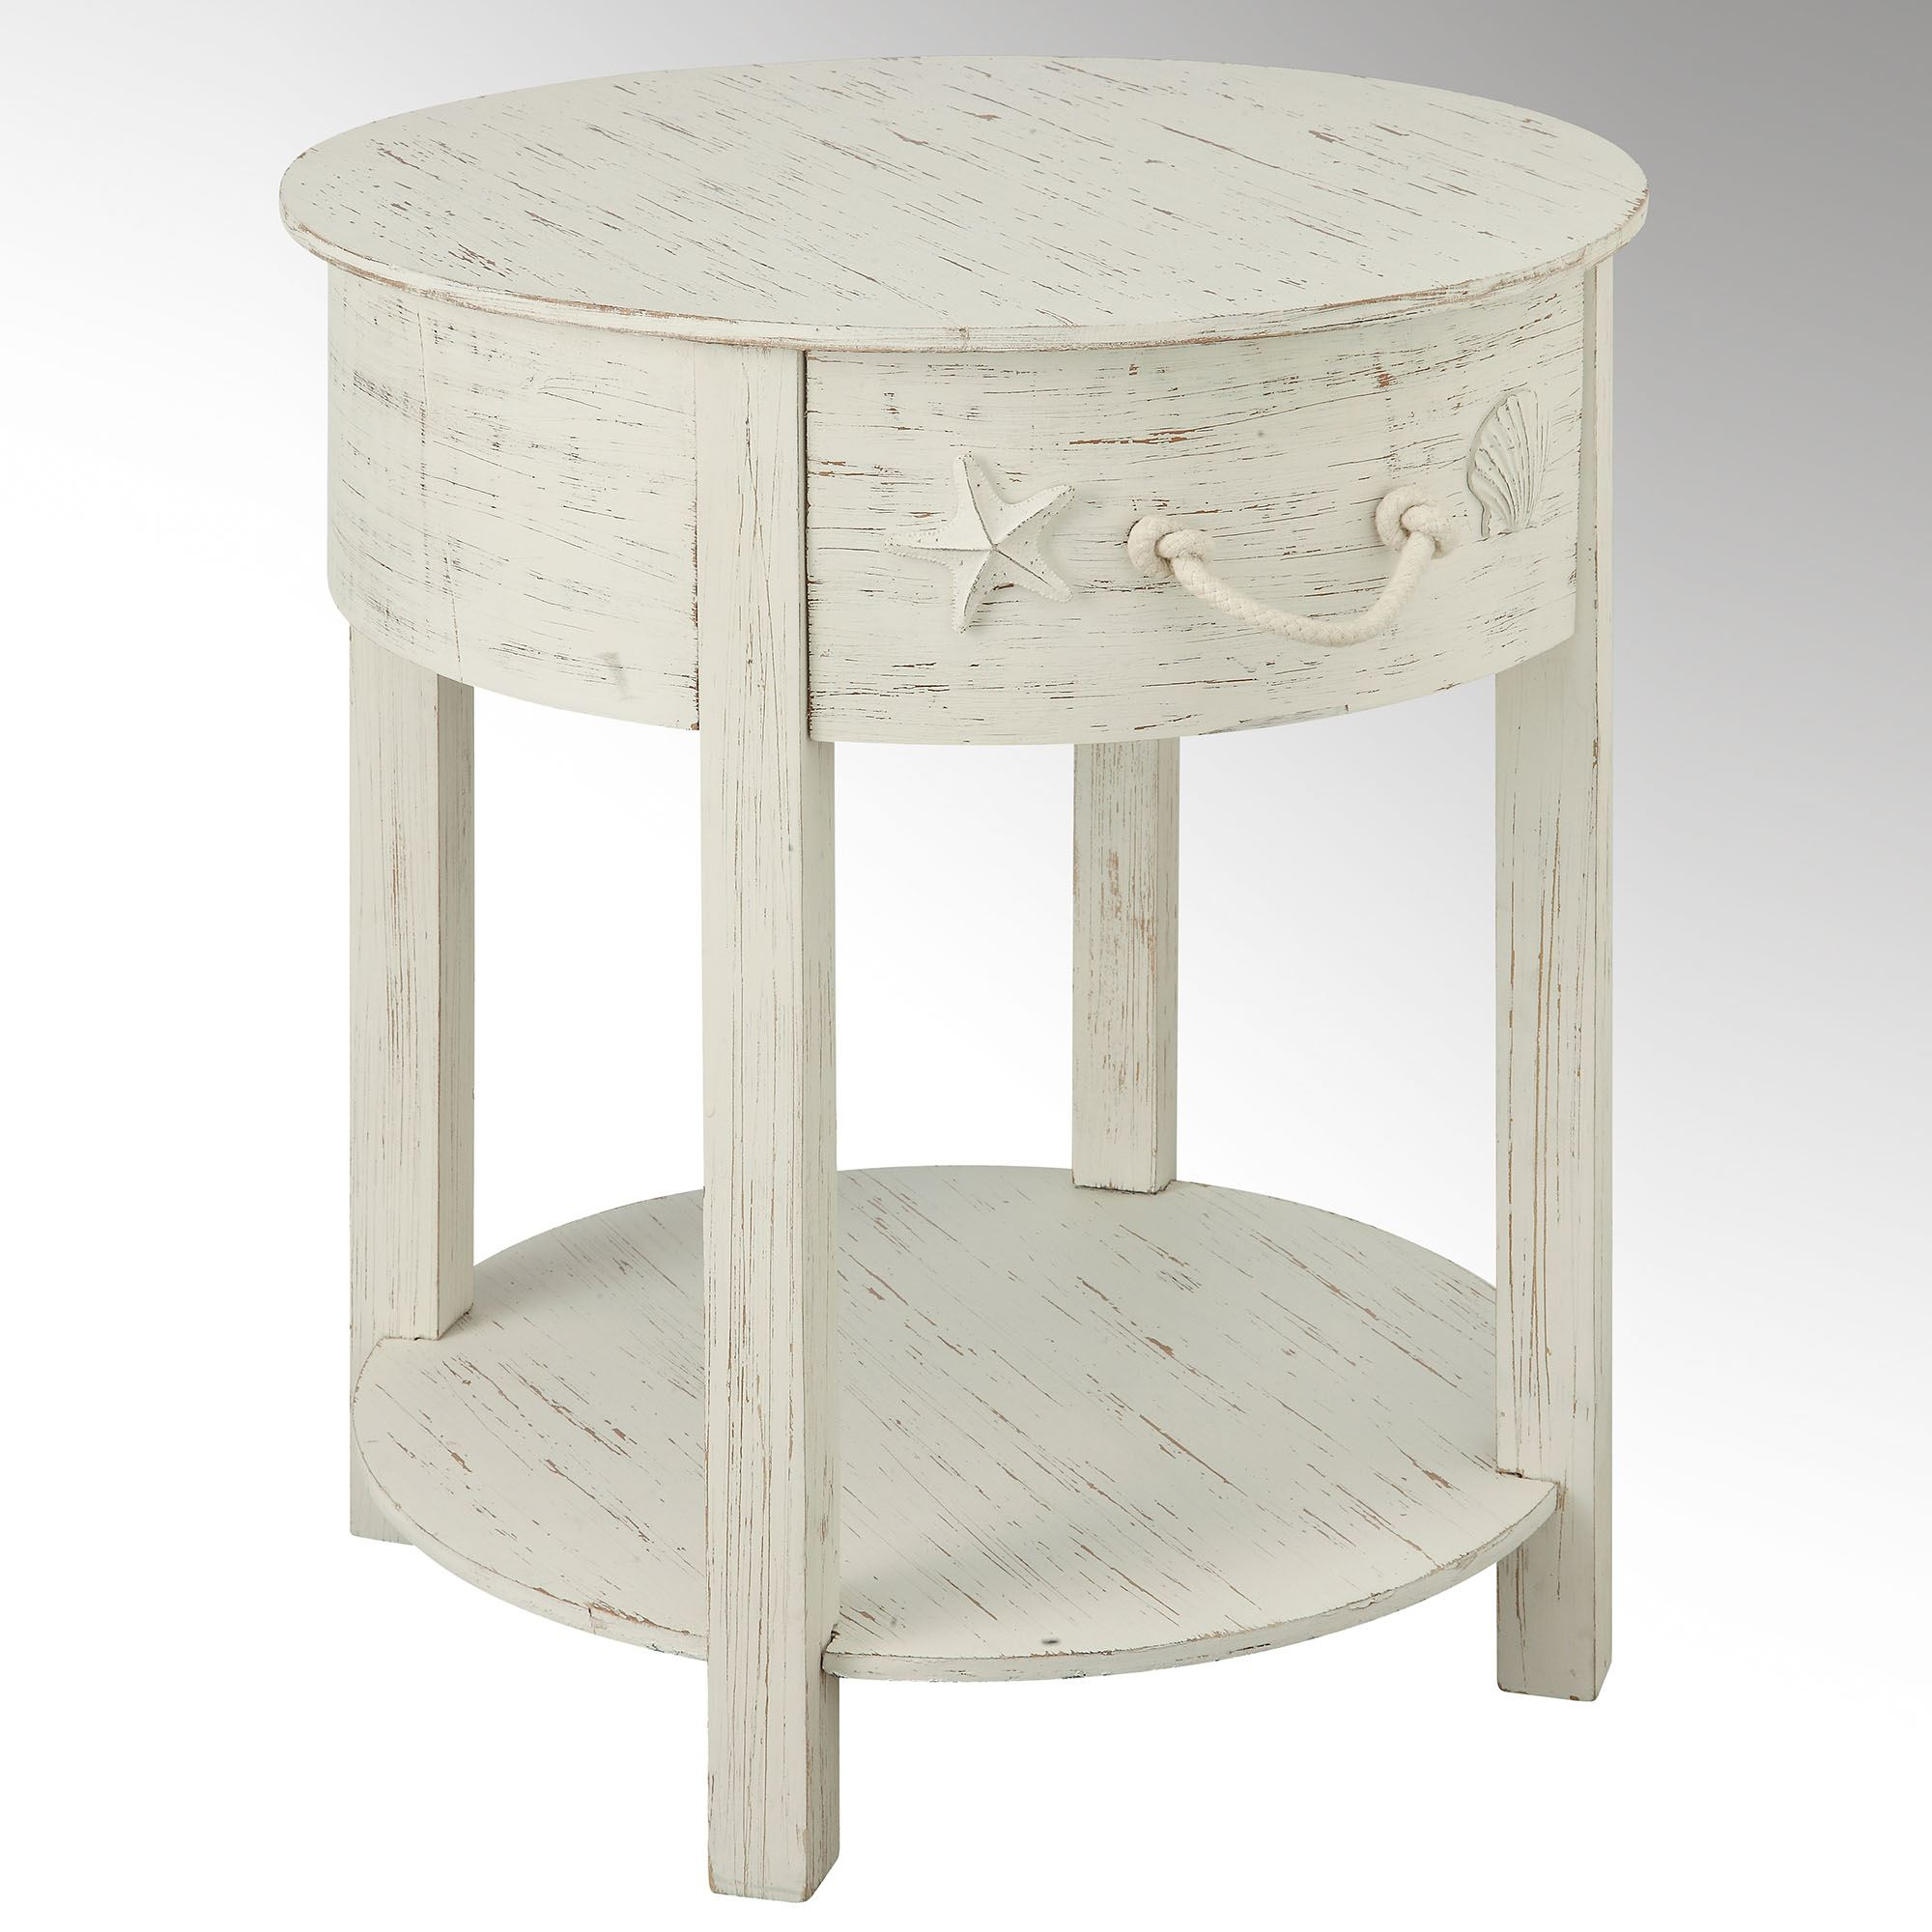 harbor main distressed white coastal accent table round with screw legs and oak bedside dorm room ideas high end outdoor furniture clear lucite small dining chairs decorator